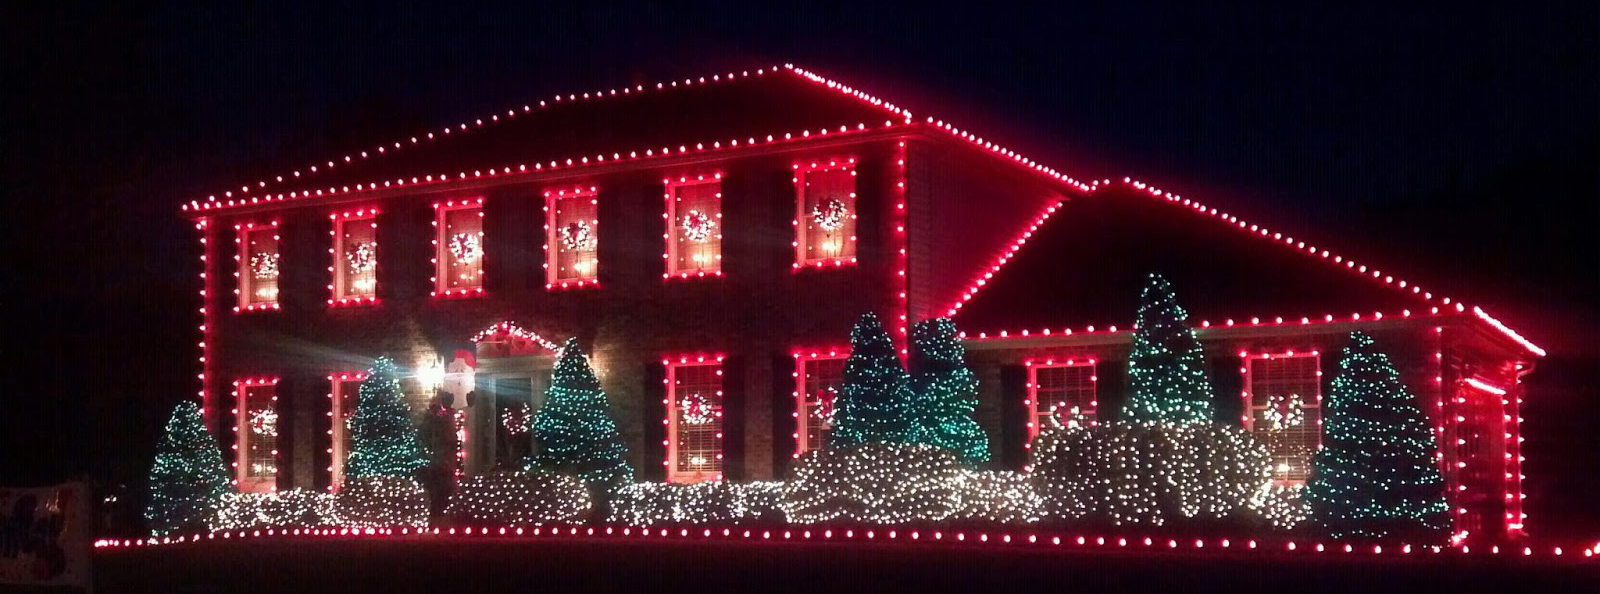 traditional christmas lighting house - Cool Christmas Light Ideas